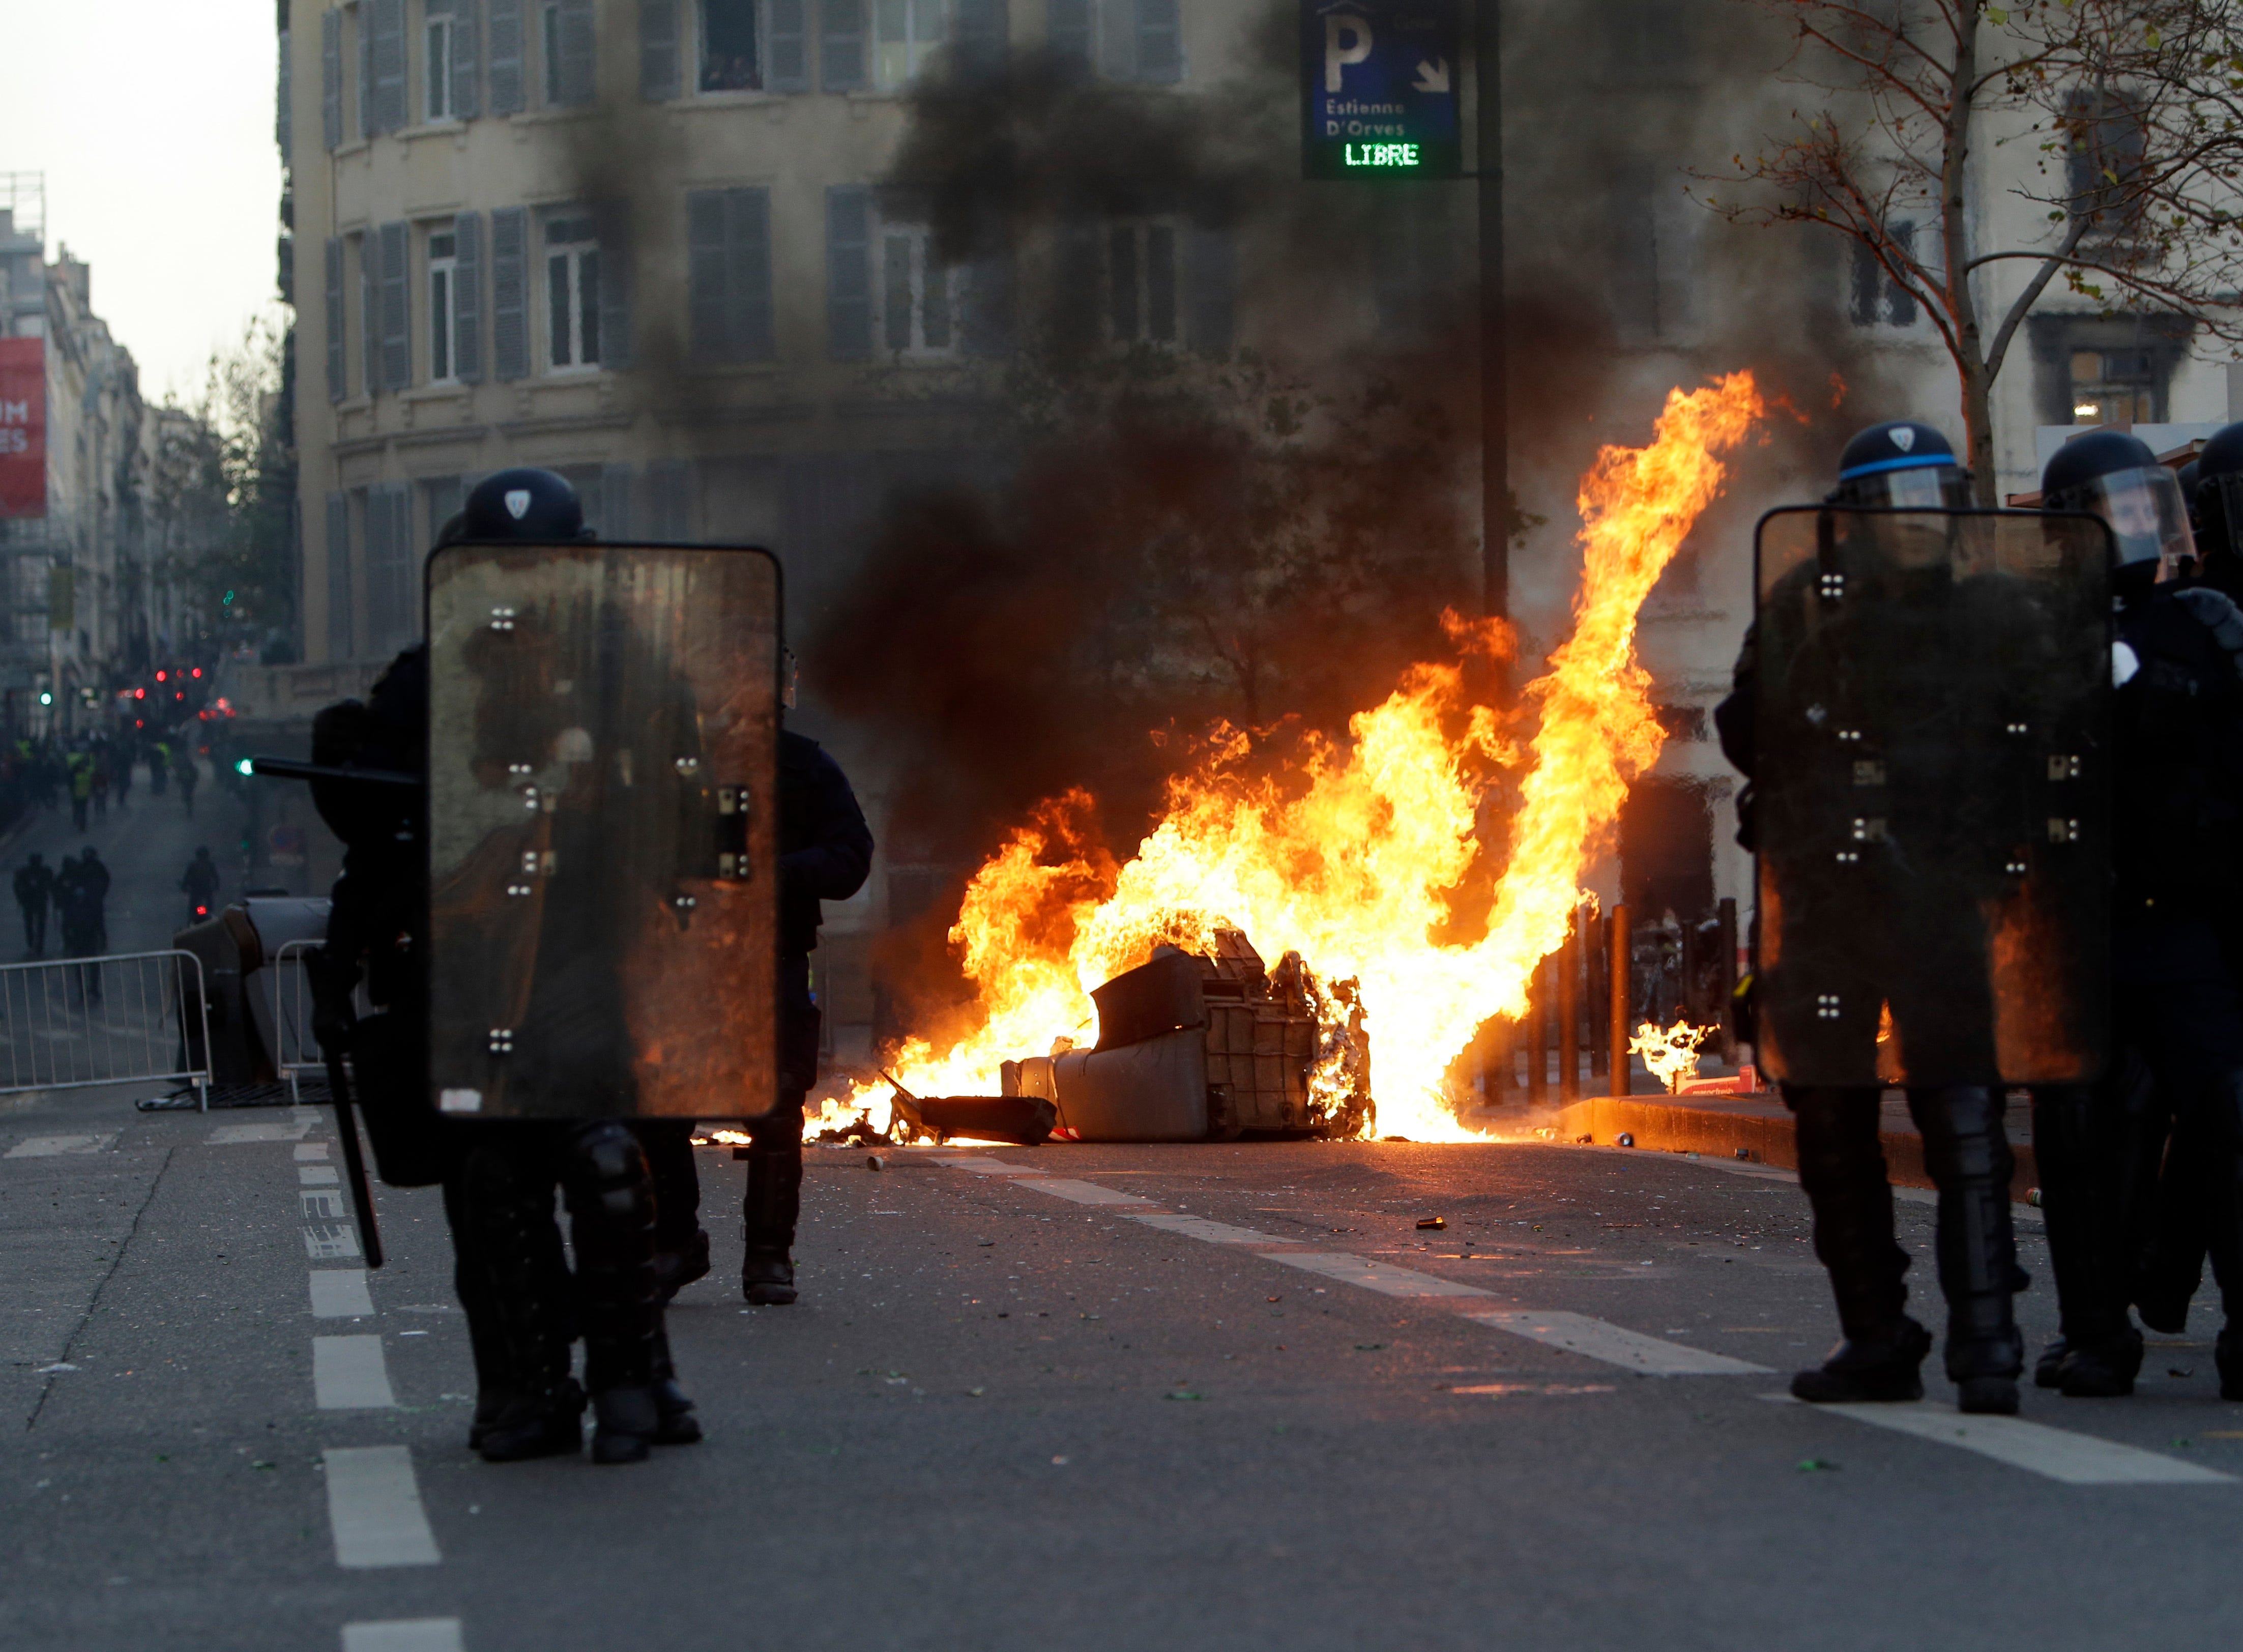 Riot police officer stand in front a burning trash bin during clashes, Saturday, Dec. 8, 2018, in Marseille, southern France. French riot police fired tear gas and water cannon in Paris on Saturday, trying to stop thousands of yellow-vested protesters from converging on the presidential palace to express their anger at high taxes and French President Emmanuel Macron.